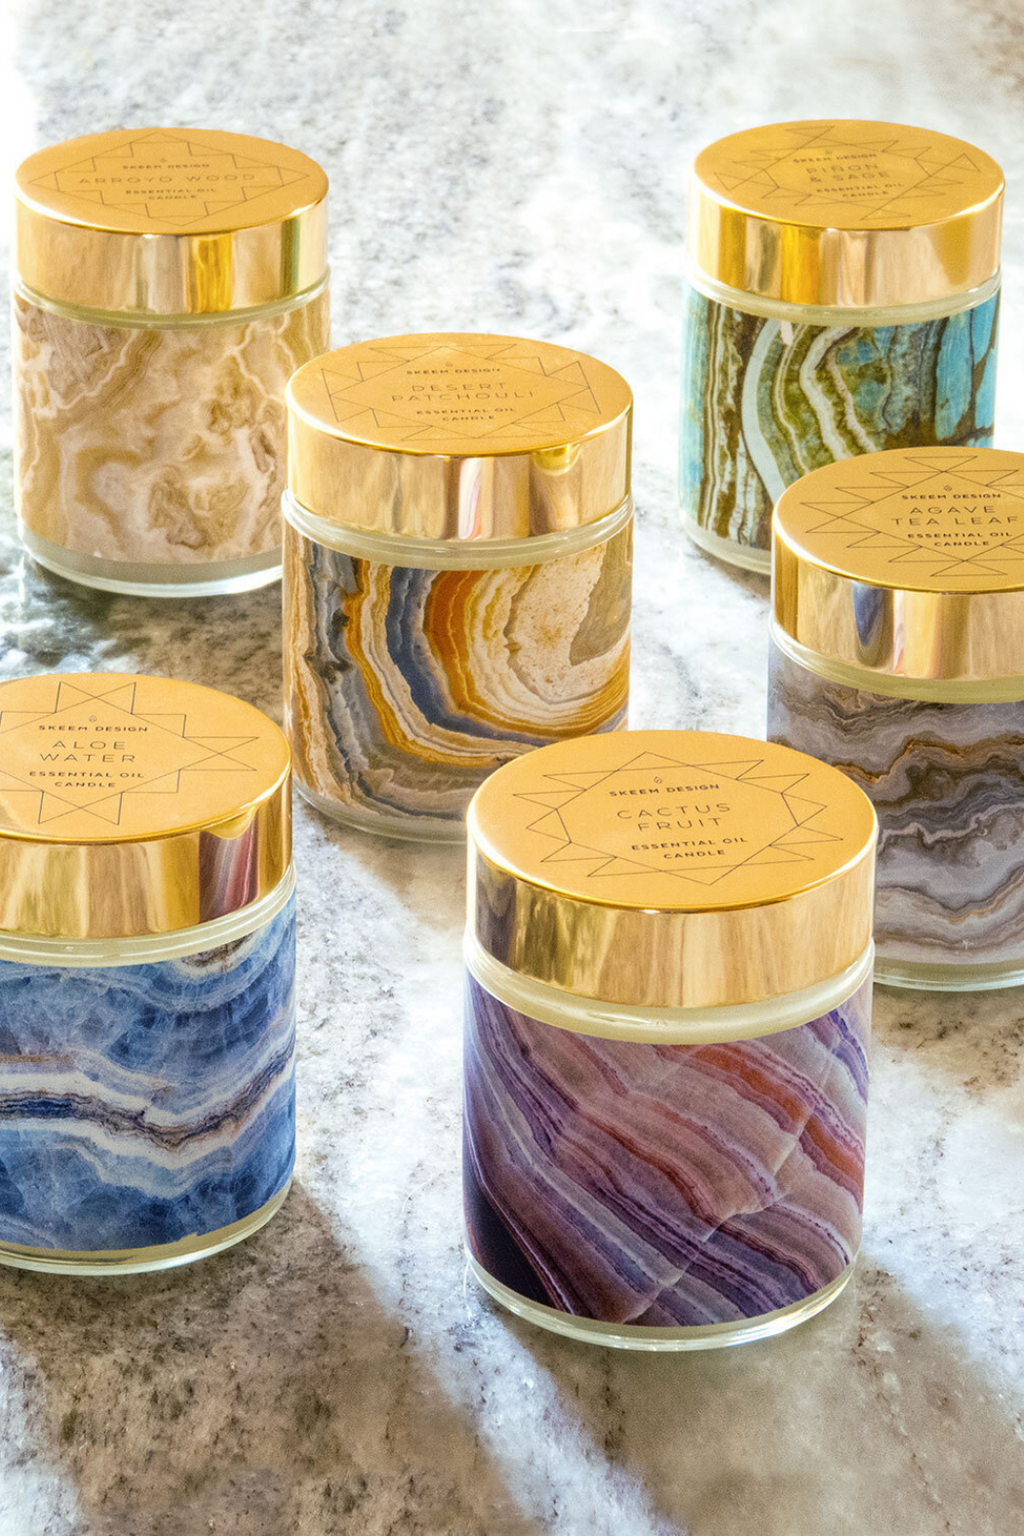 SKEEM Sedona Candles